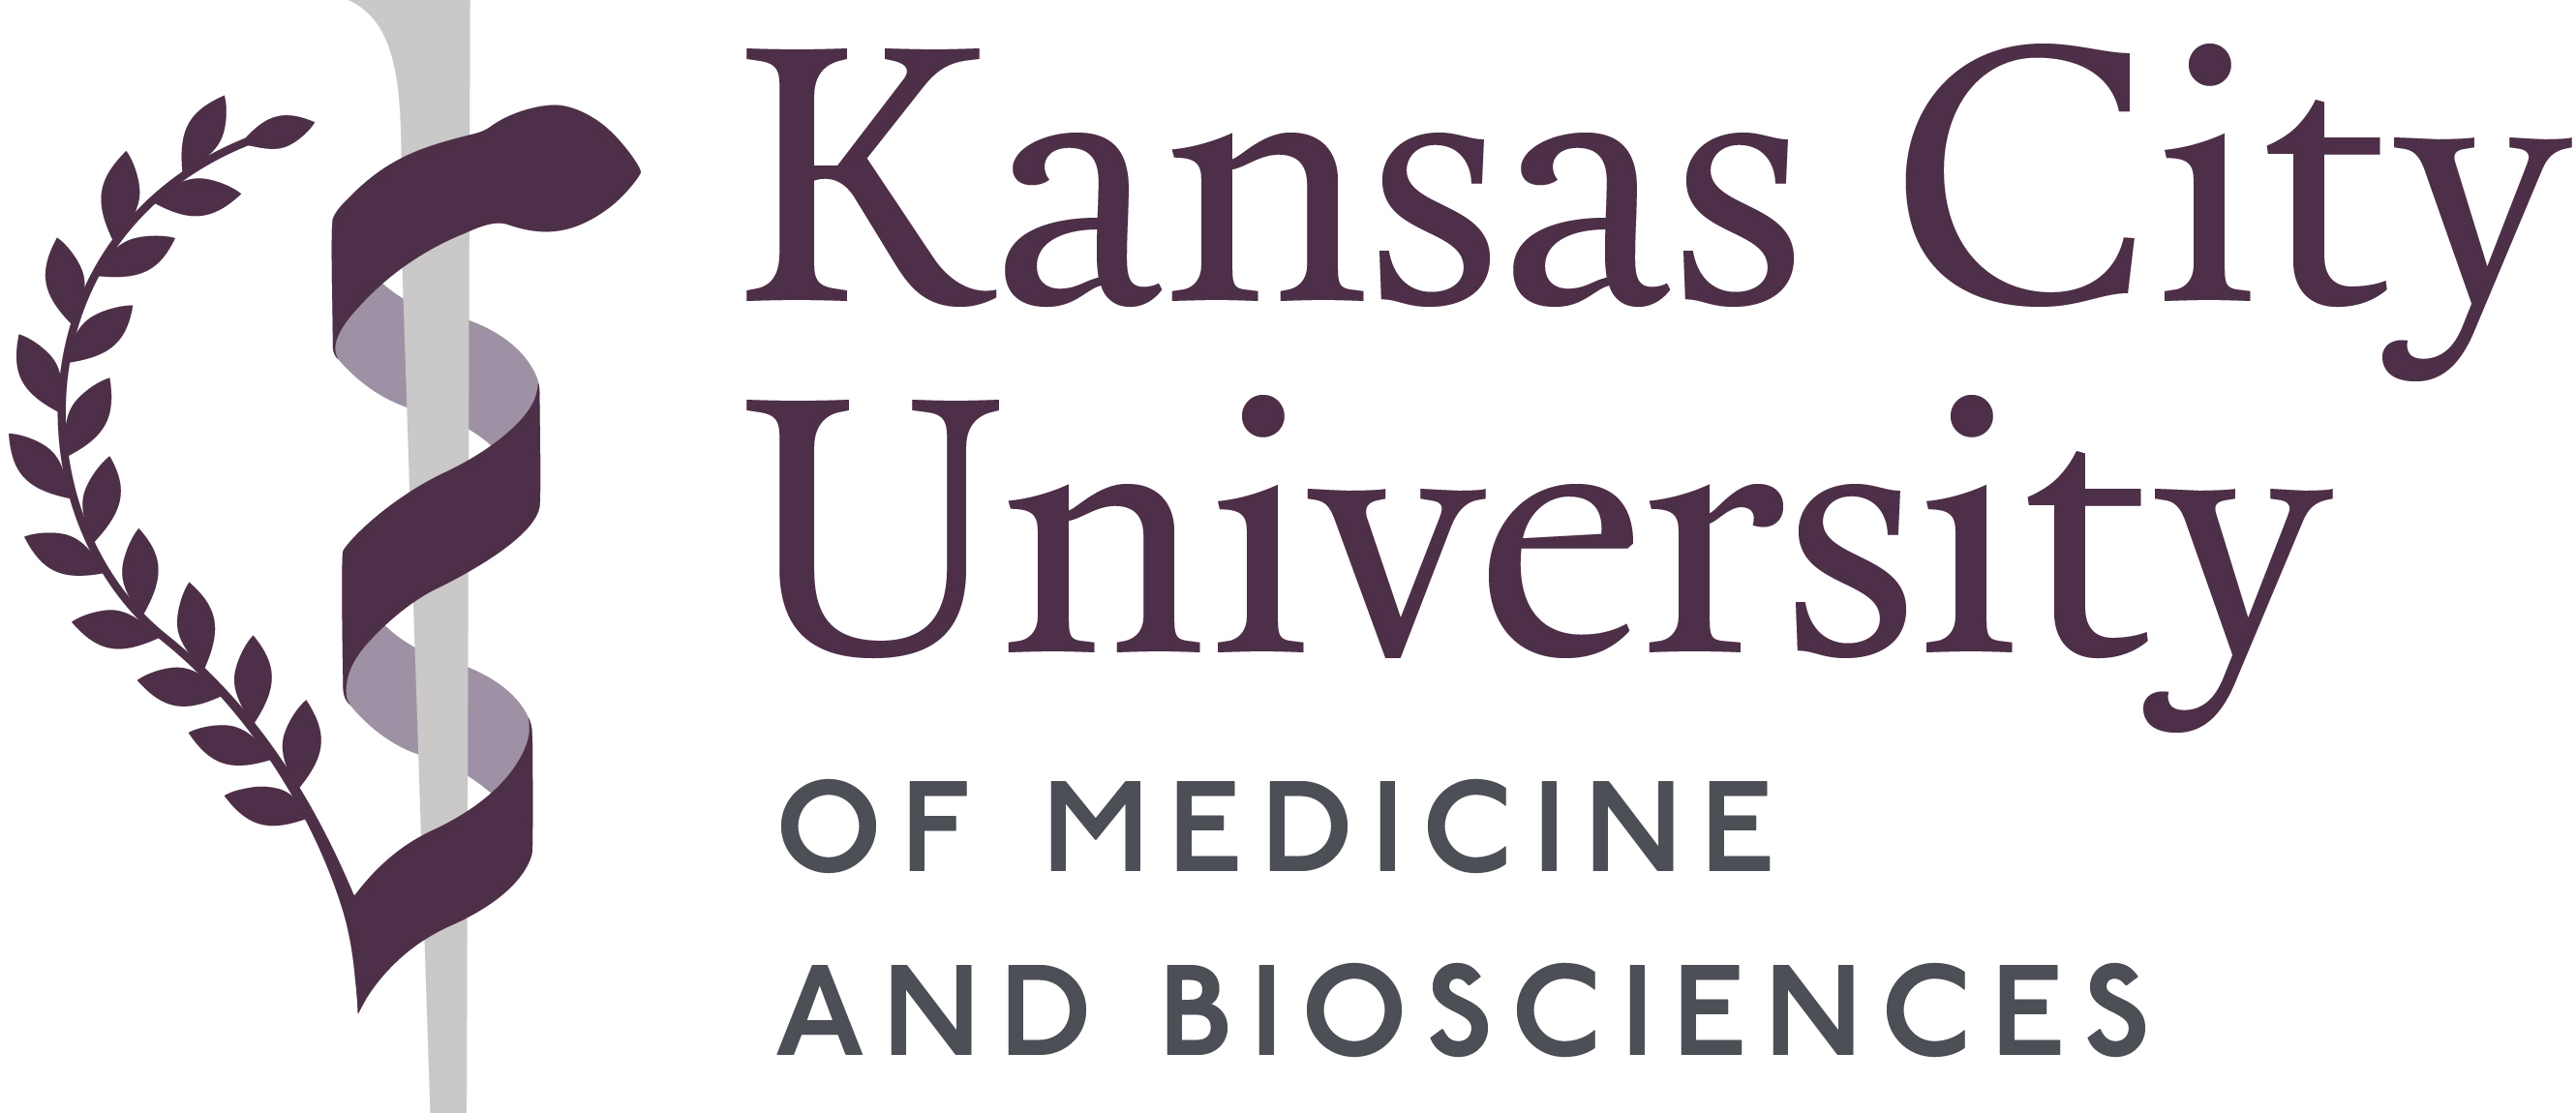 Kansas City University of Medicine and Biosciences - Joplin